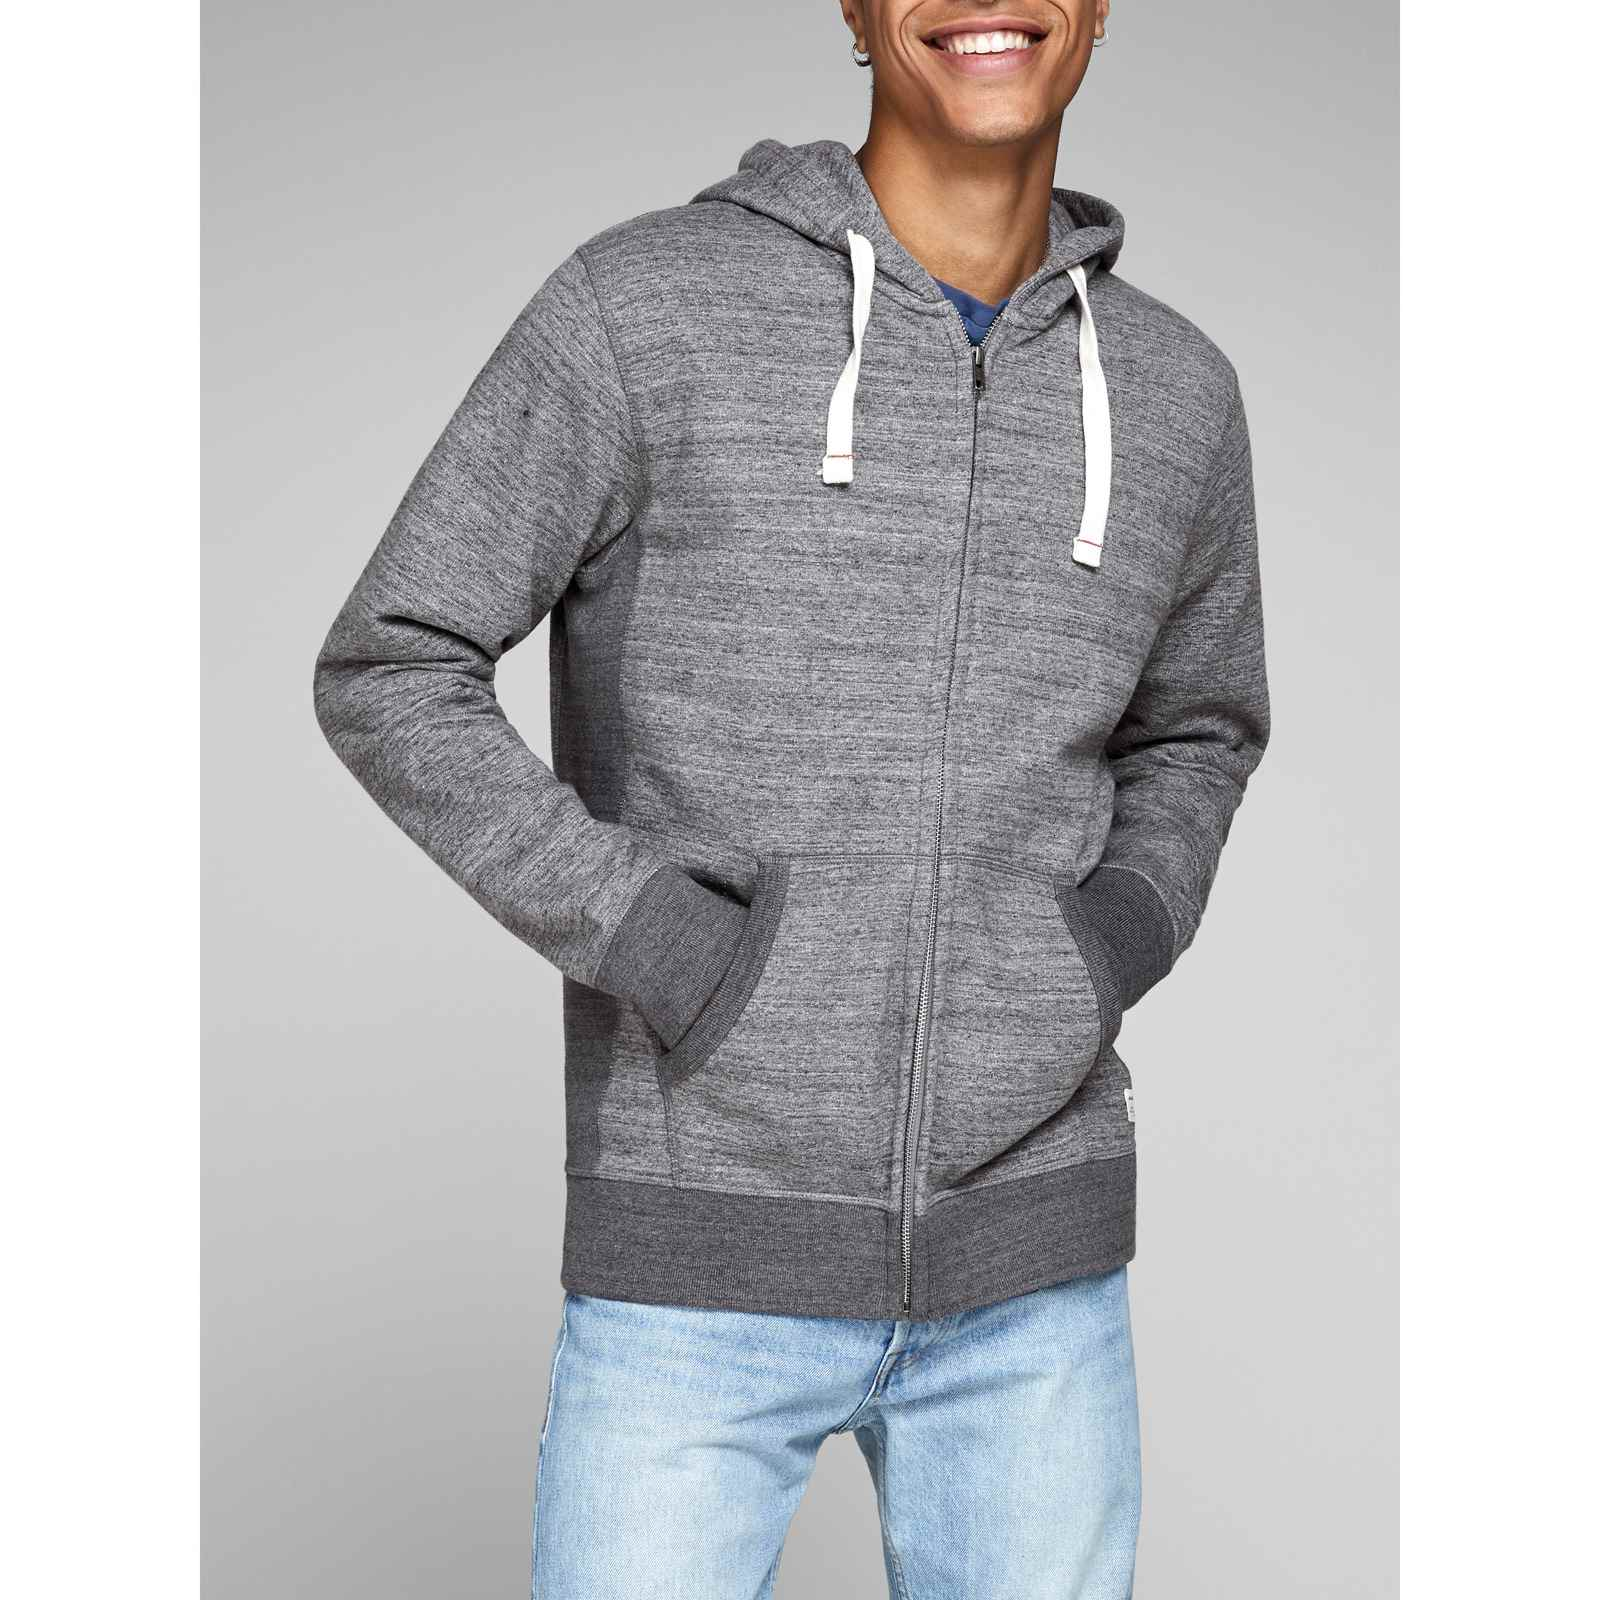 Jjespace  Sweat à Capuche  Gris